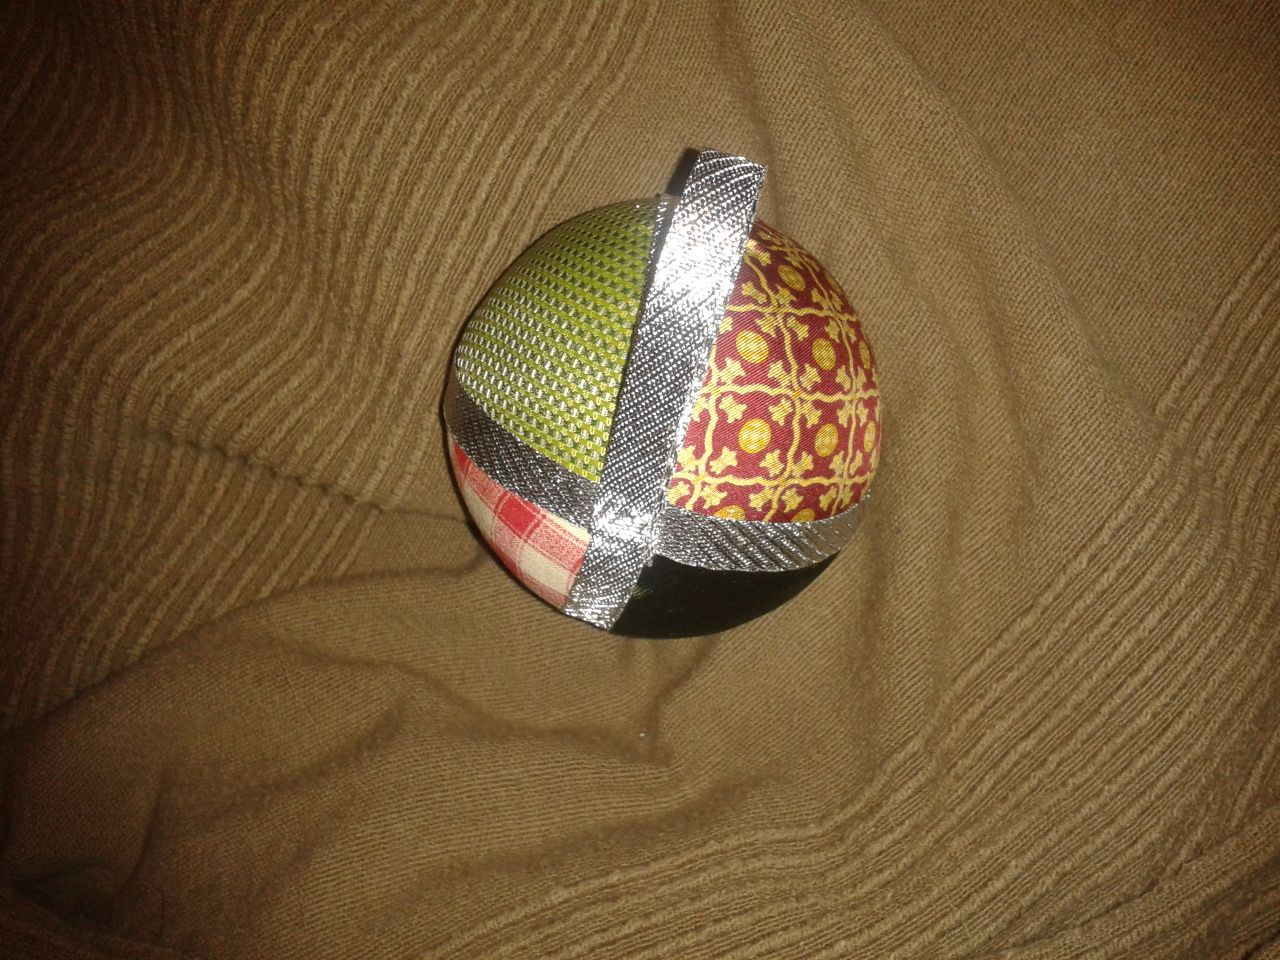 Ornament made by using several fabrics.